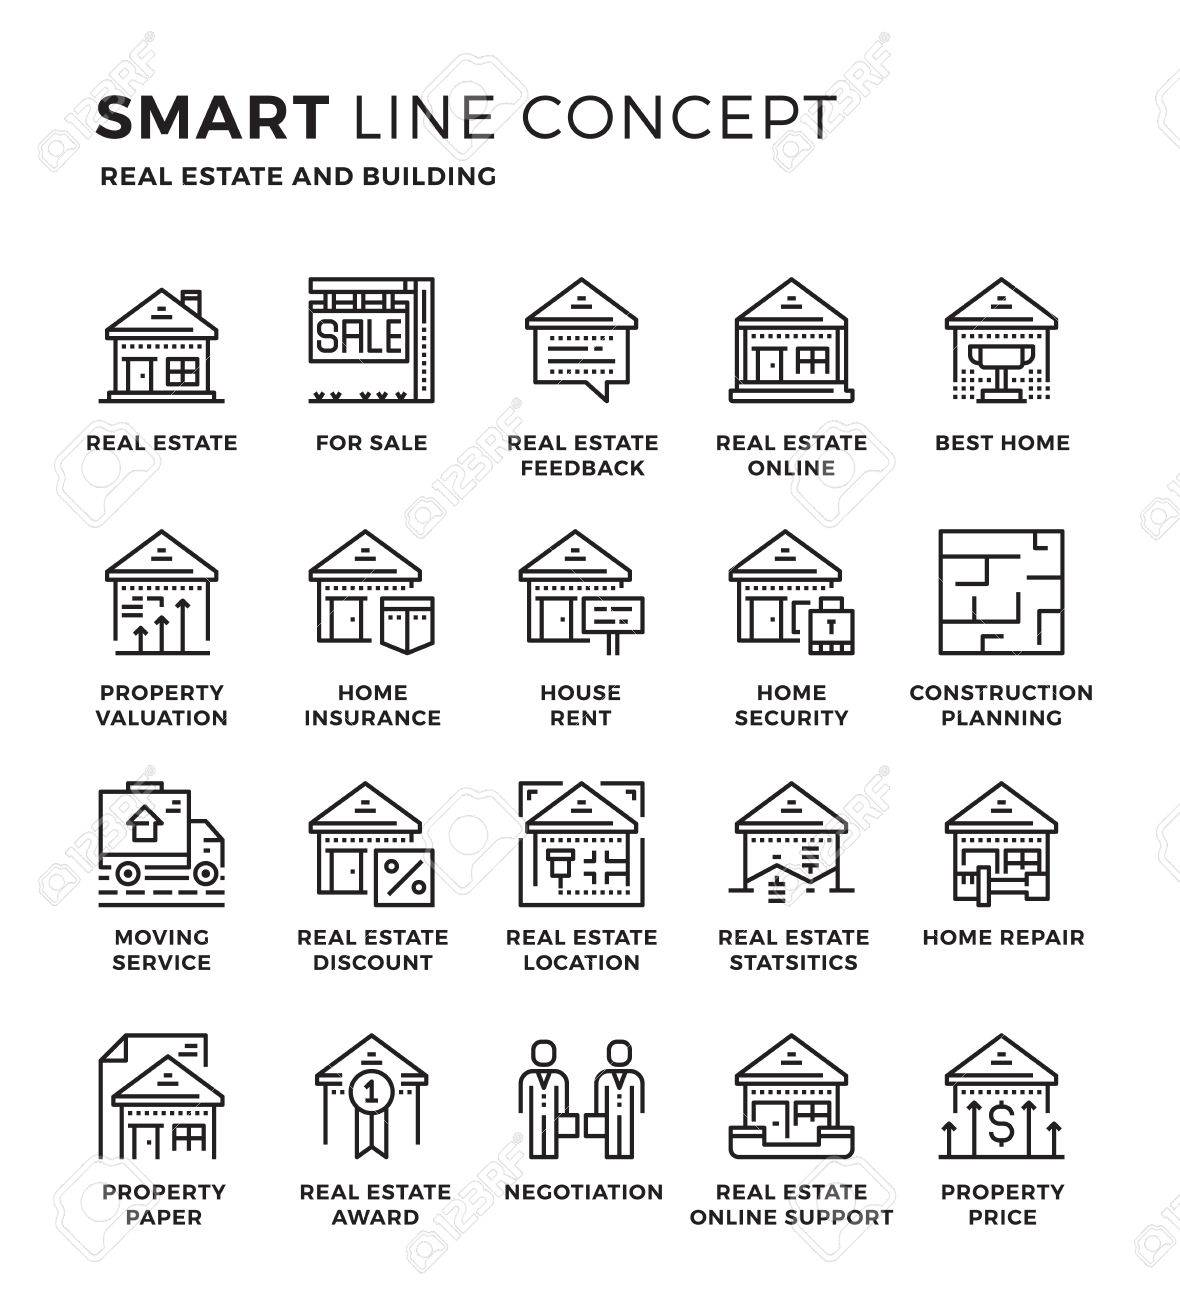 Set of modern thin line icon collection concept of Real Estate , Building. Pixel perfect icon design for Web Graphic , Mobile app ,Vector Design illustration. - 55964426